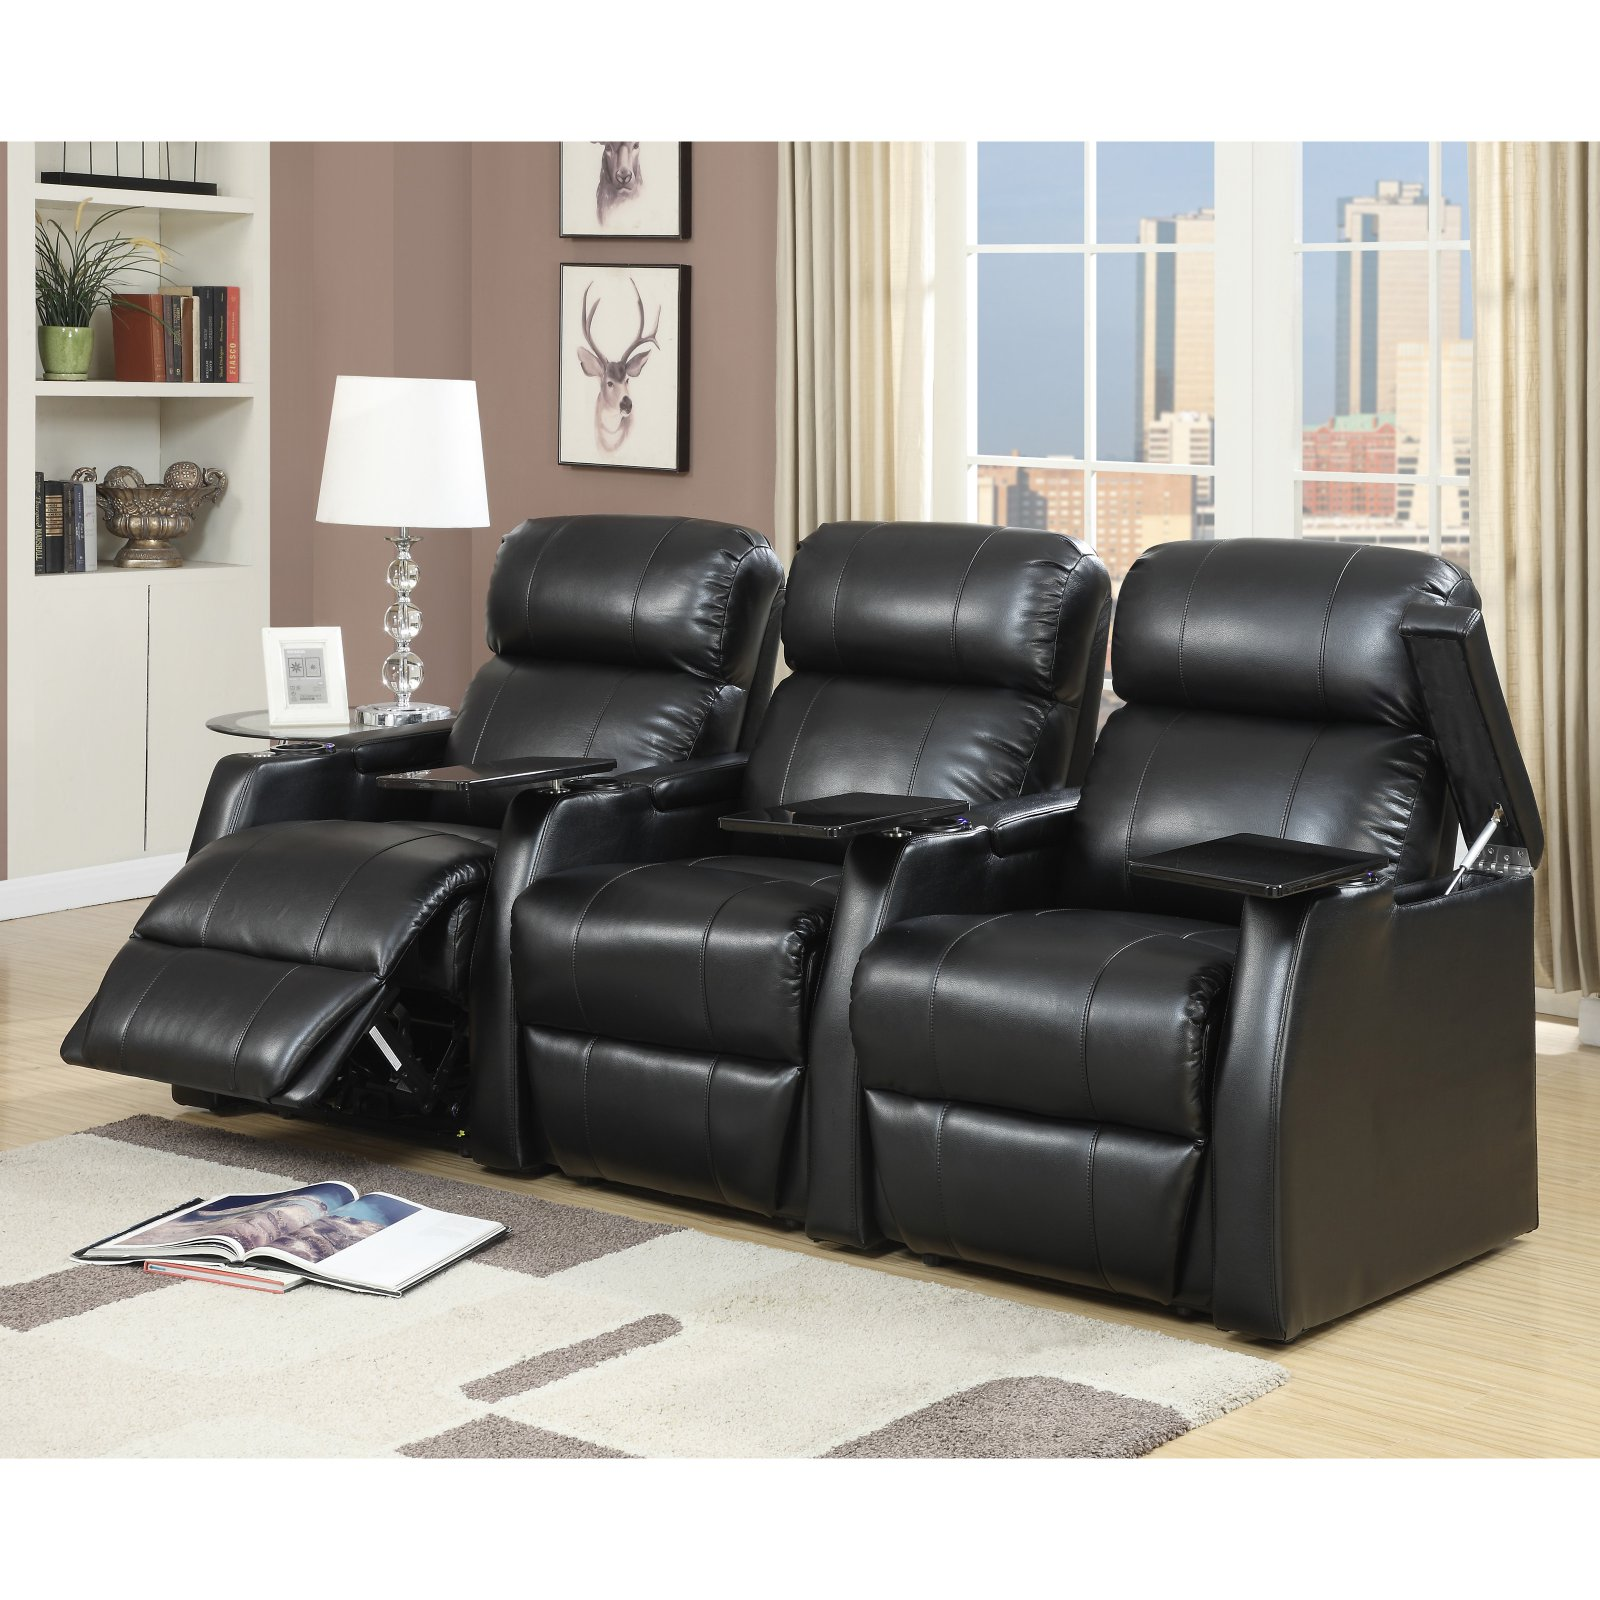 Picket House Furnishings Cecille 3 Piece Home Theater Power Recliner Set